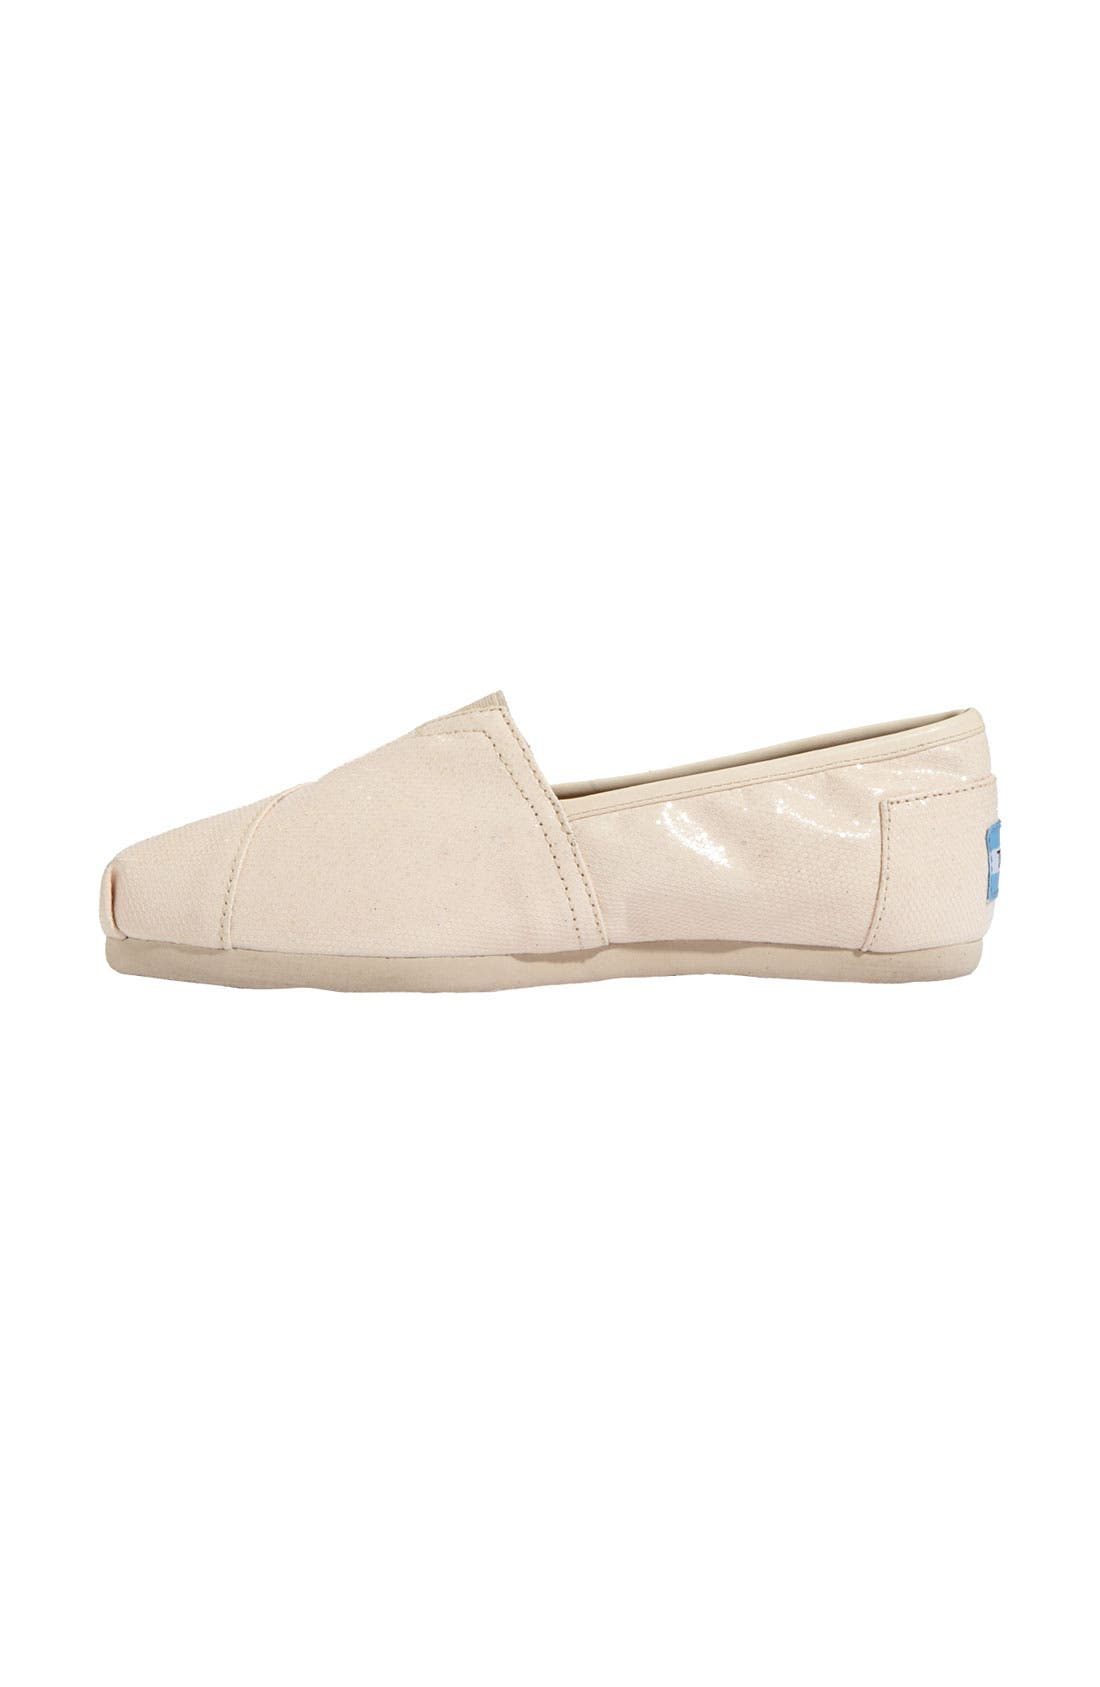 'Classic - Glitter' Slip-On,                             Alternate thumbnail 38, color,